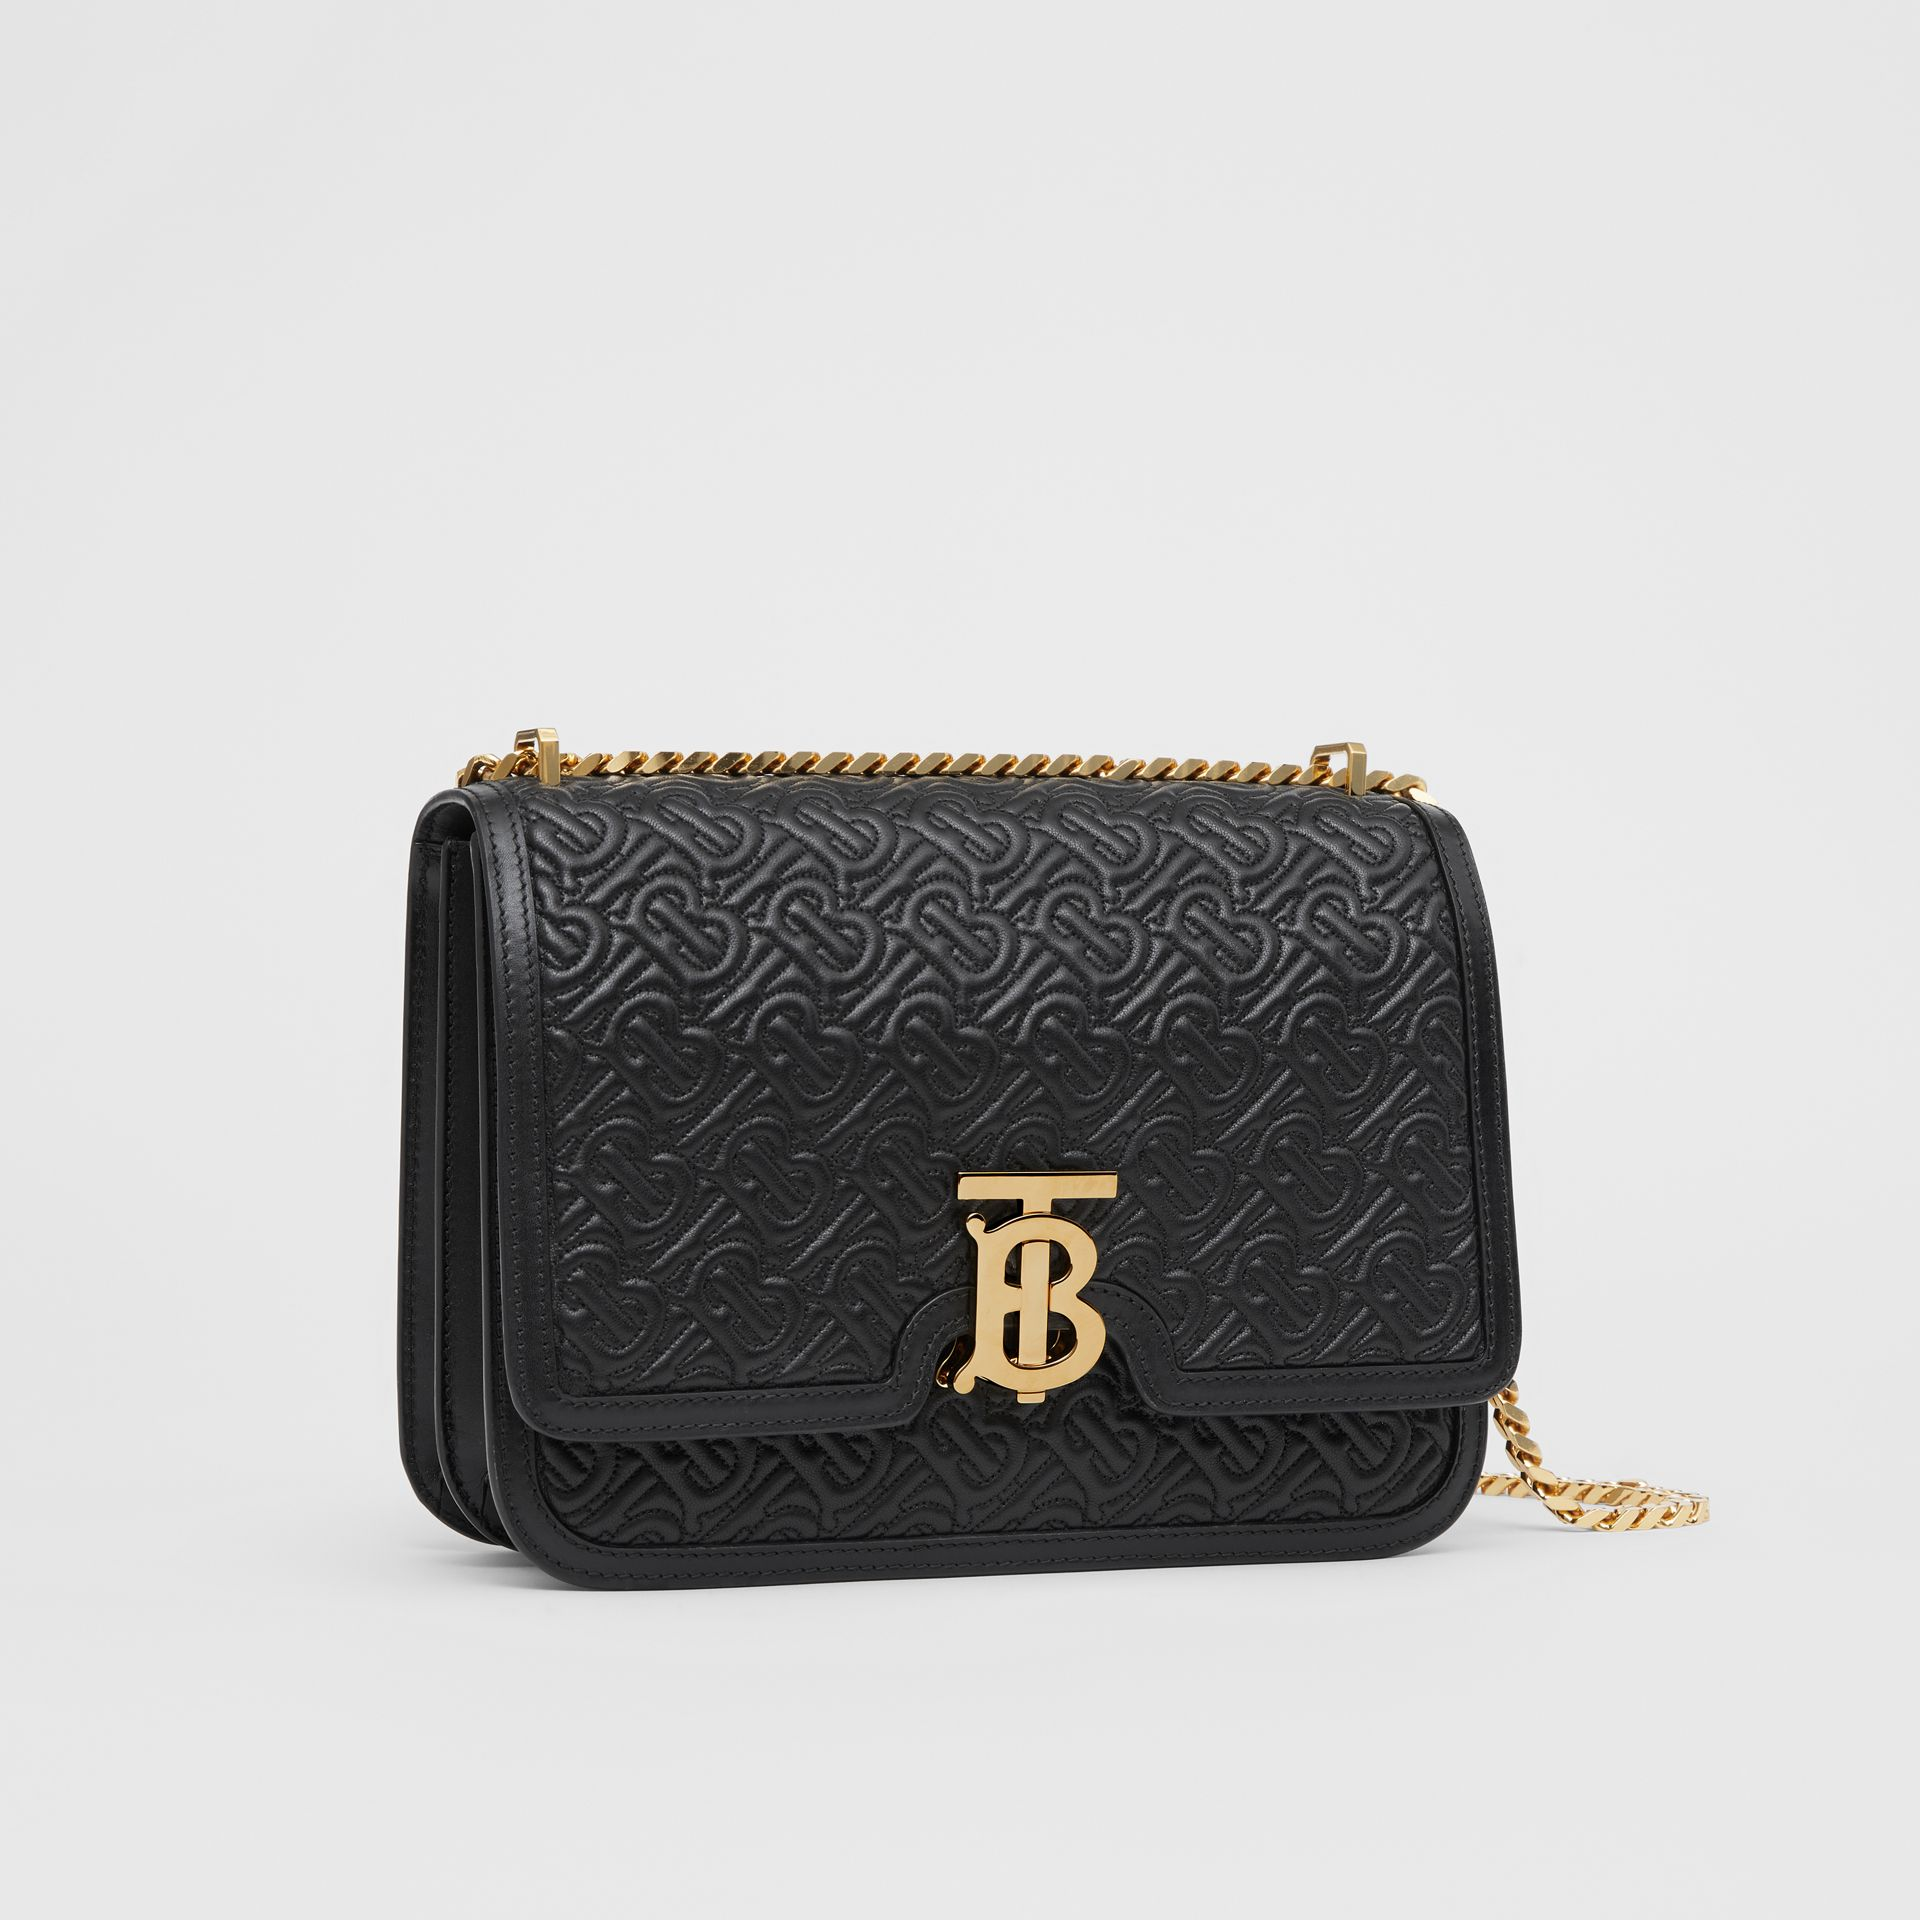 Medium Quilted Monogram Lambskin TB Bag in Black - Women | Burberry Canada - gallery image 6